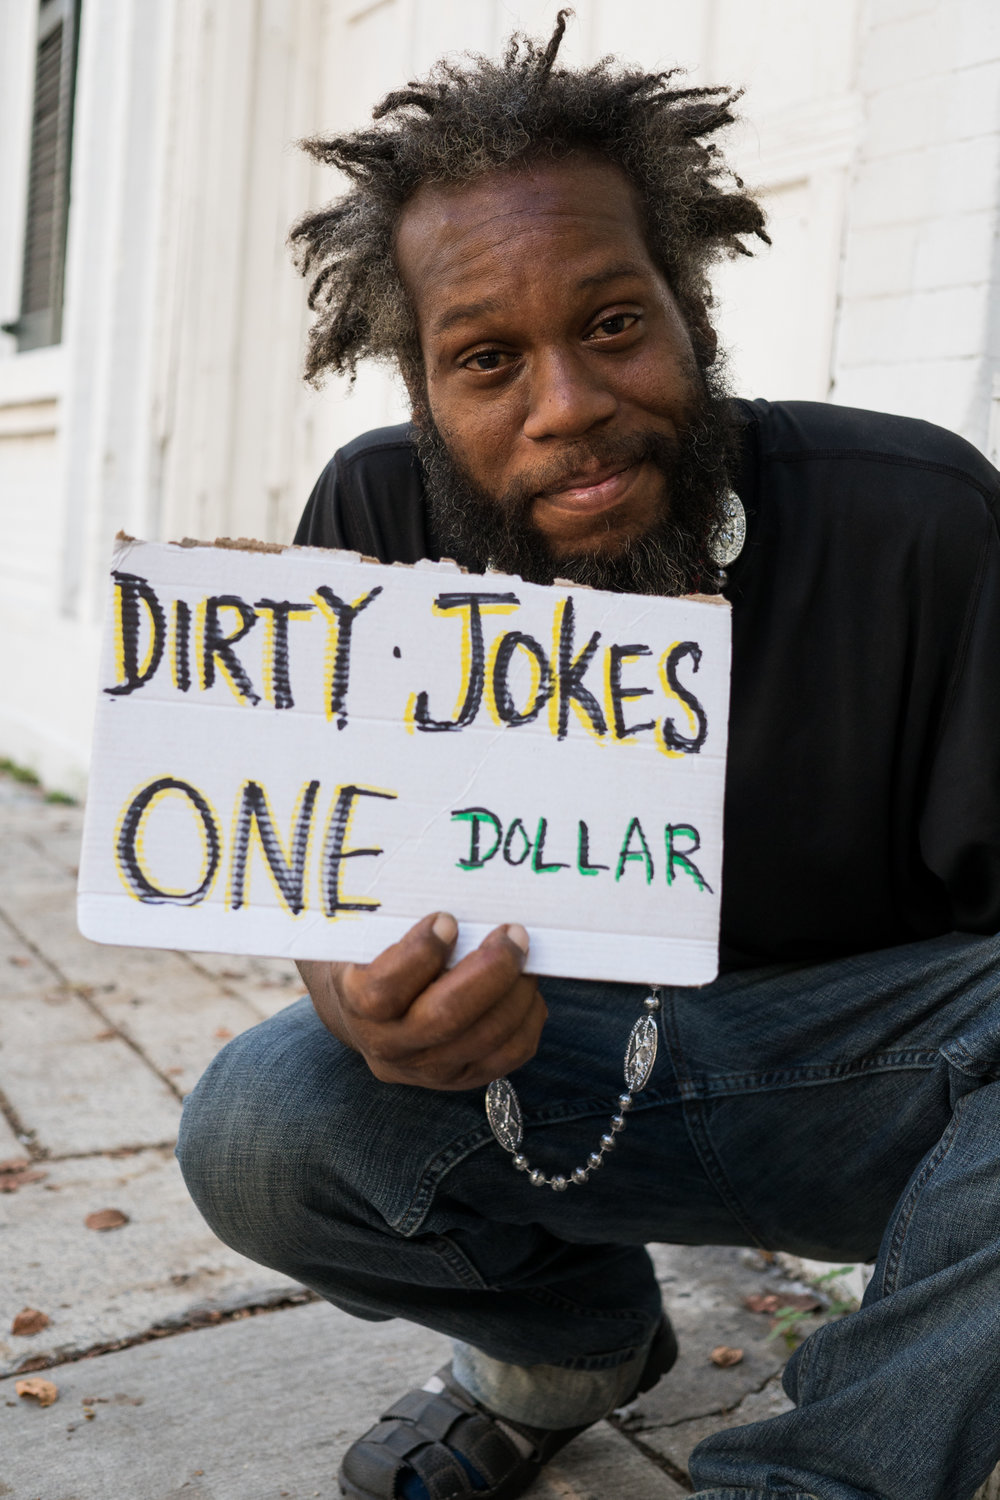 A man I met on the street who told me a clever dirty joke.